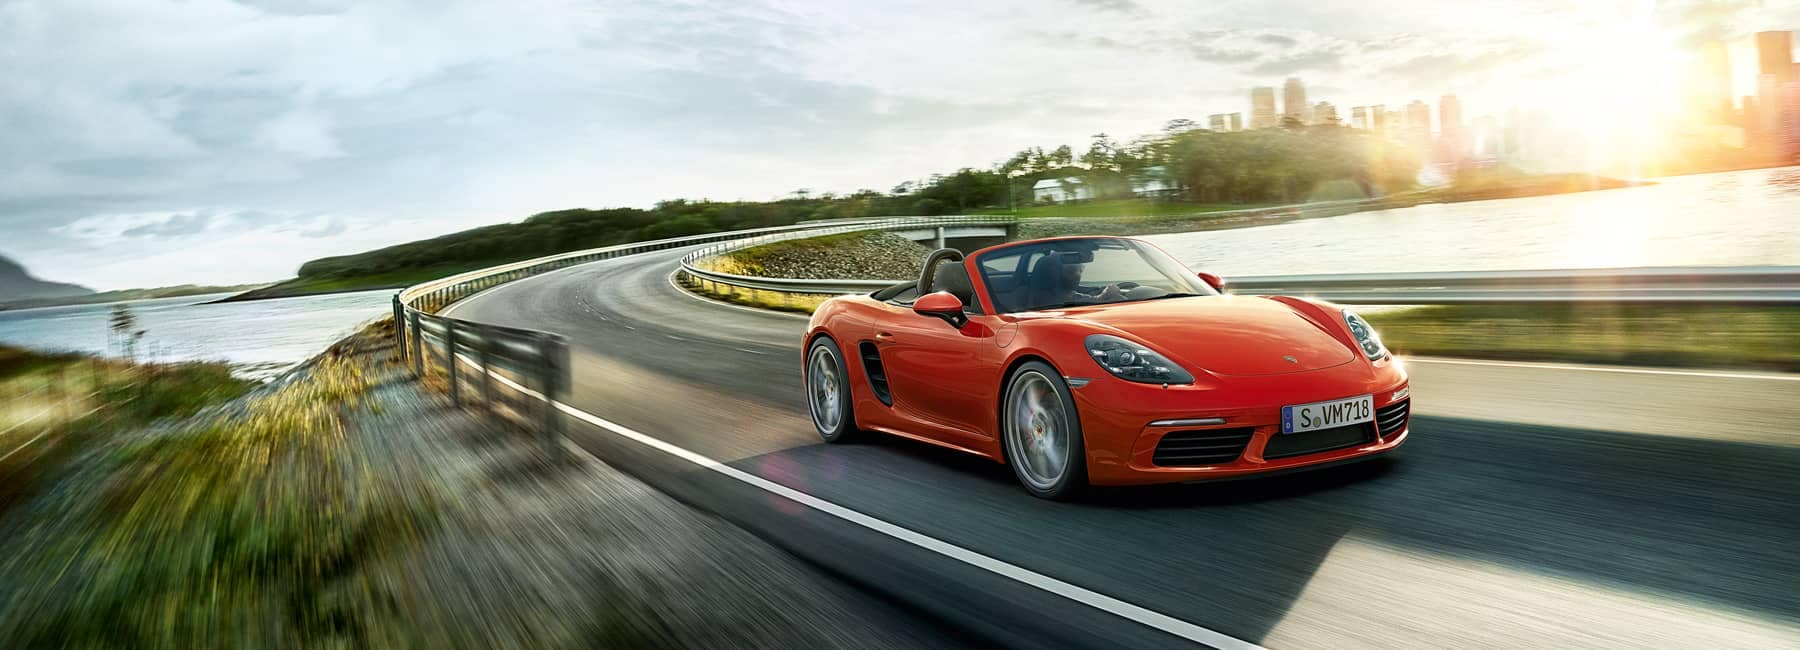 4a68c932db88 2019 Porsche 718 Boxster Model Review with Prices